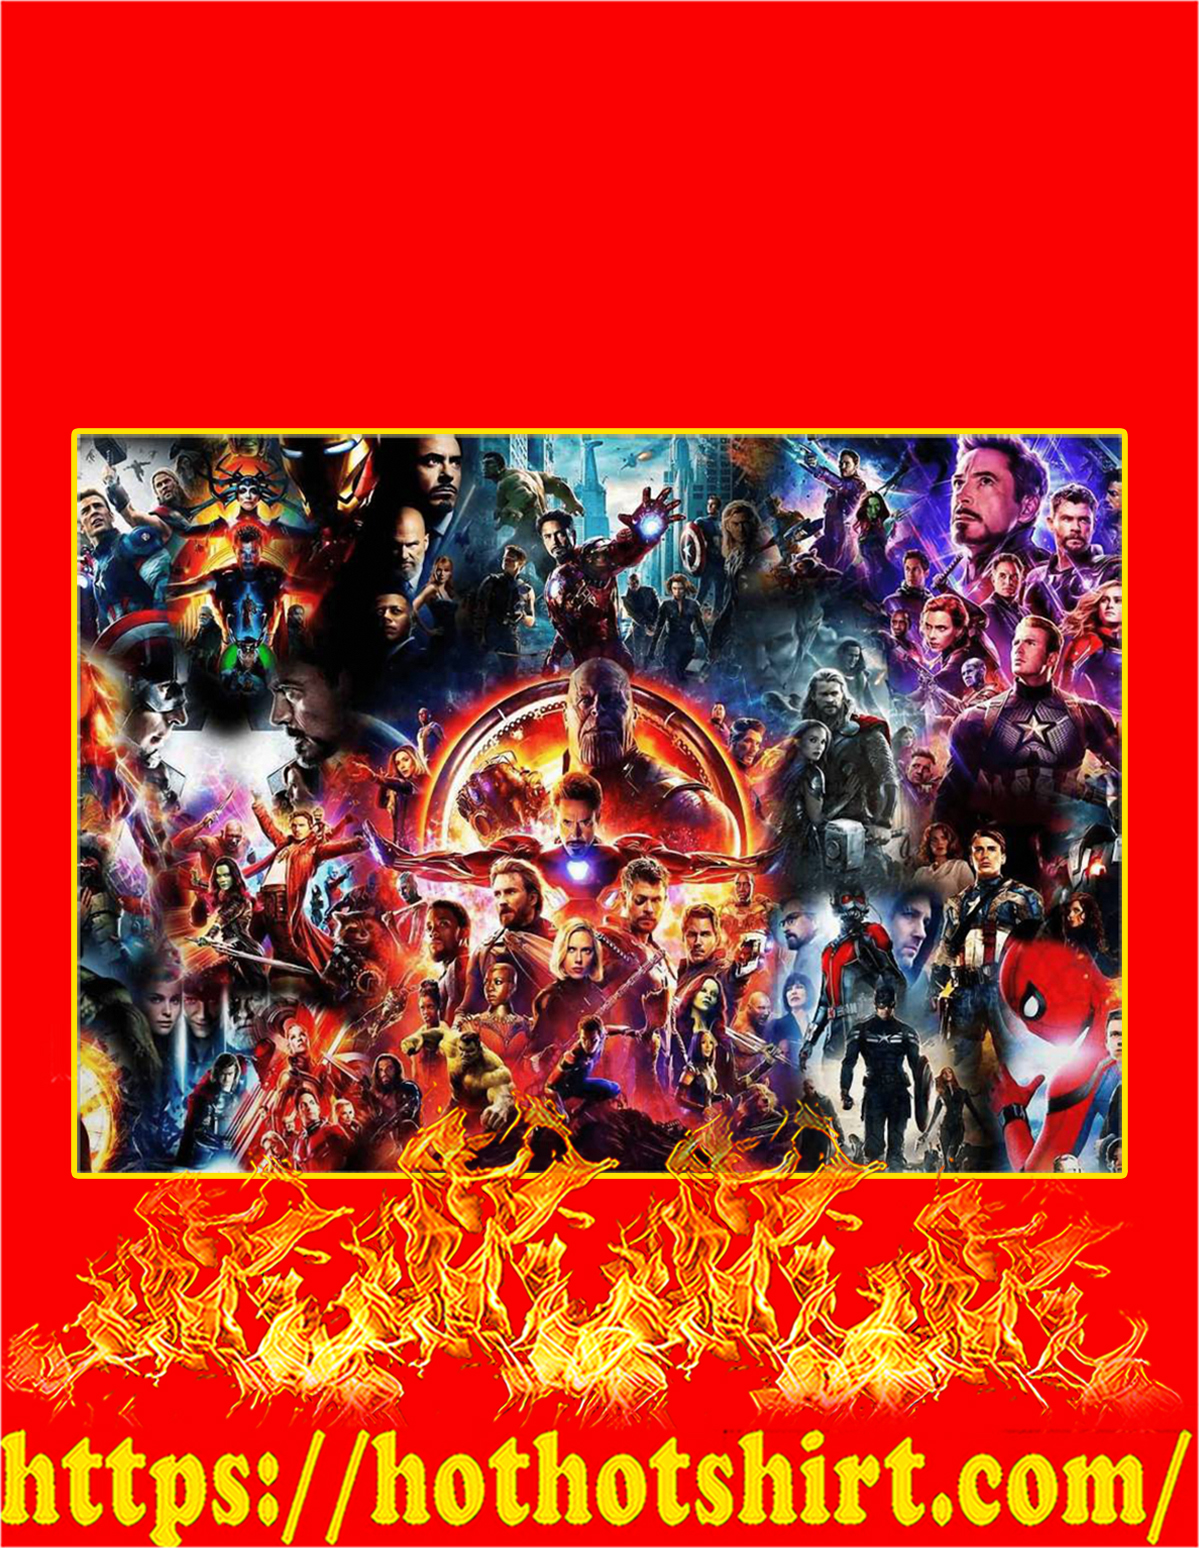 The Avengers End Game Poster - A3